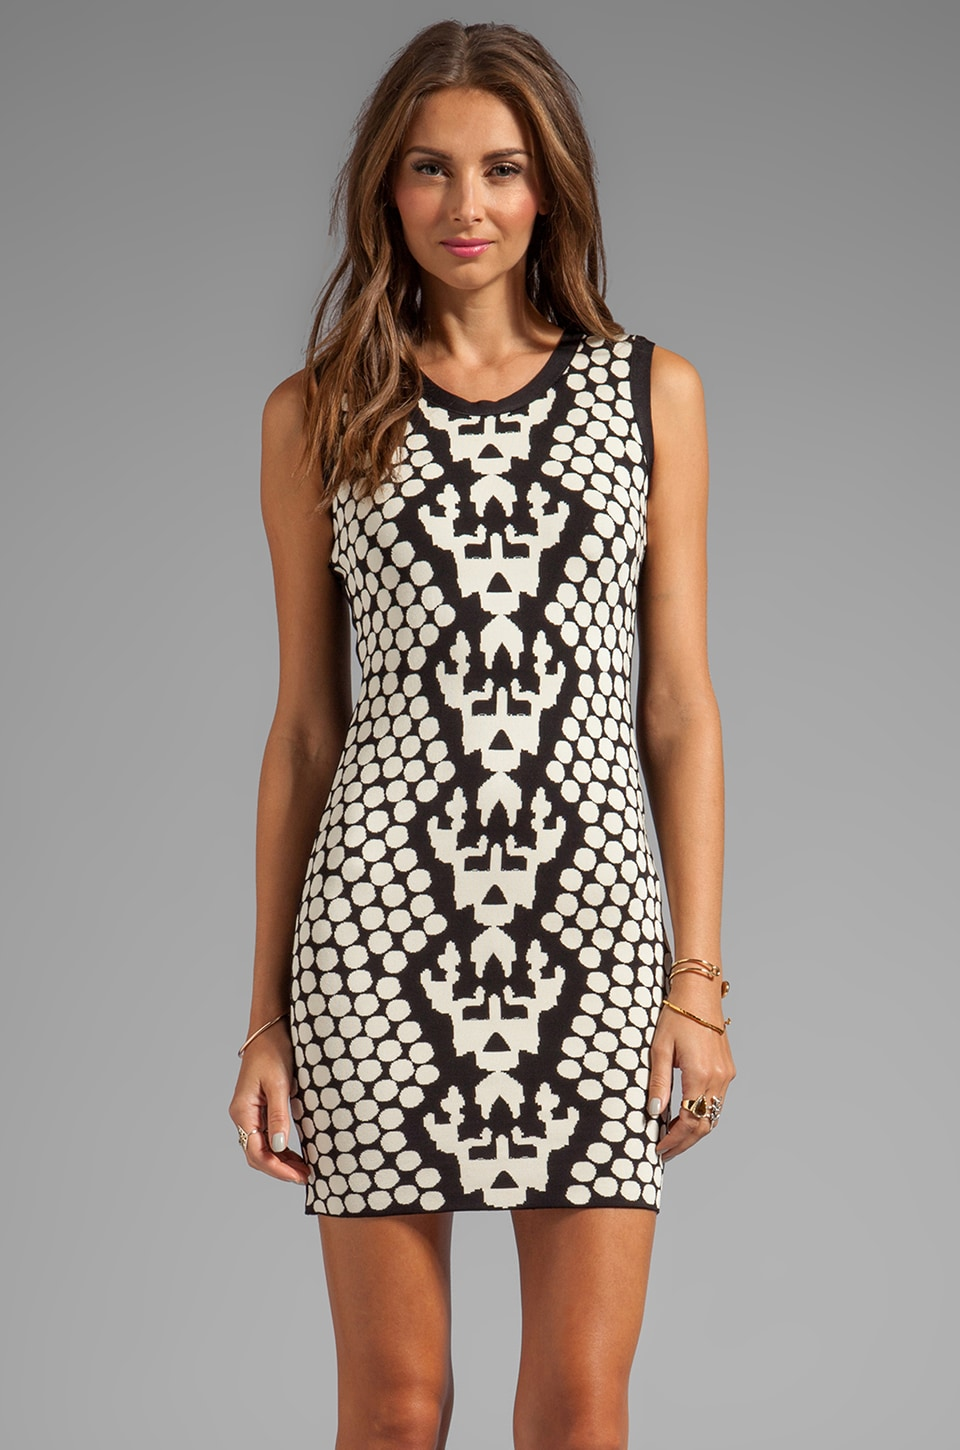 Stretta Padma Tank Dress in Black/White